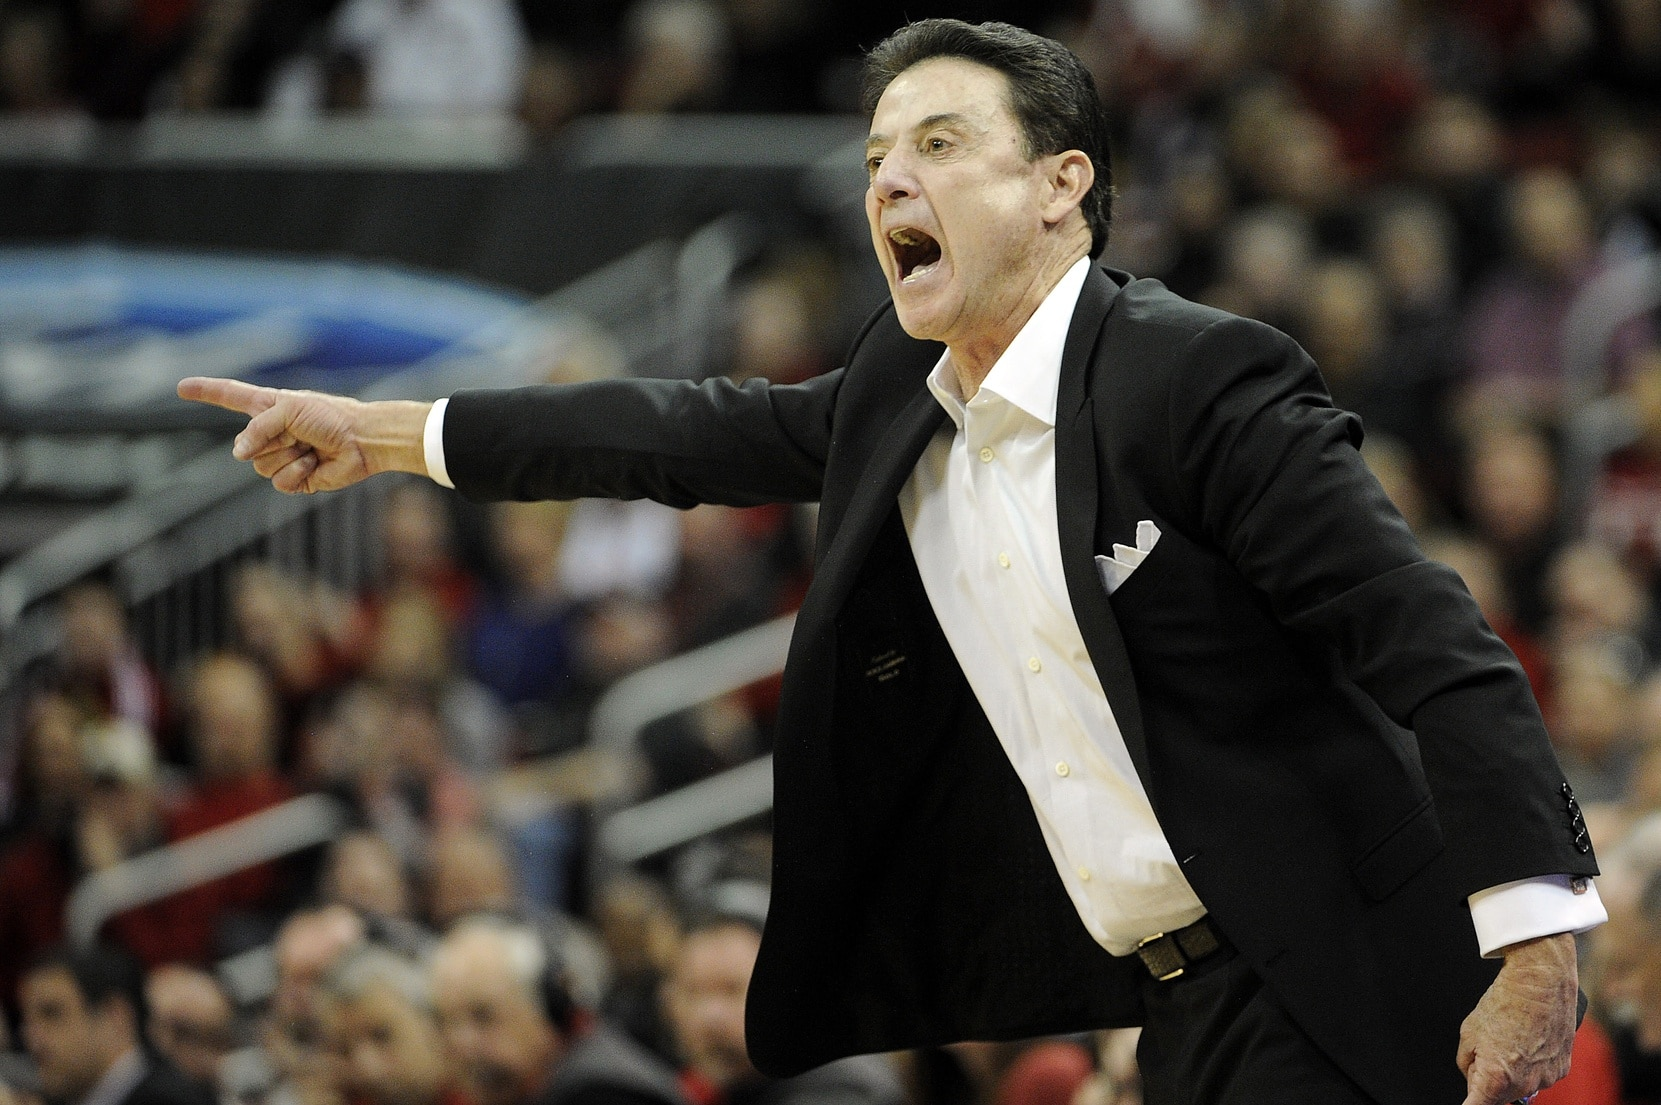 Louisville Cardinals head coach Rick Pitino is embroiled in one of the biggest scandals of college basketball in recent history